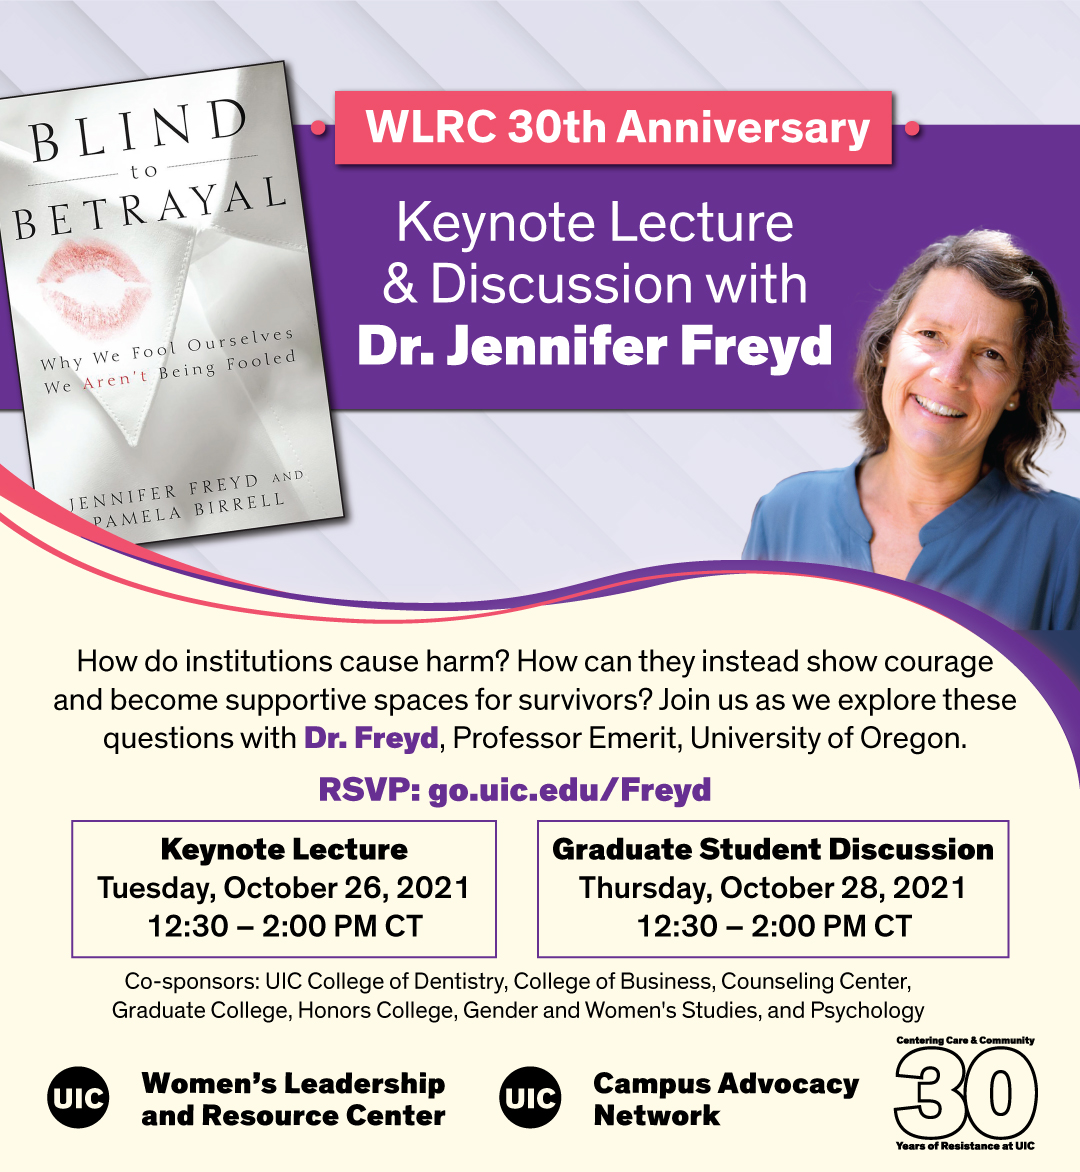 The book jacket of _Blind to Betrayal_, which features a kiss-shaped red lipstick stain on a white shirt collar, next to a photo of Dr. Jennifer Freyd. Below that is text describing the event.